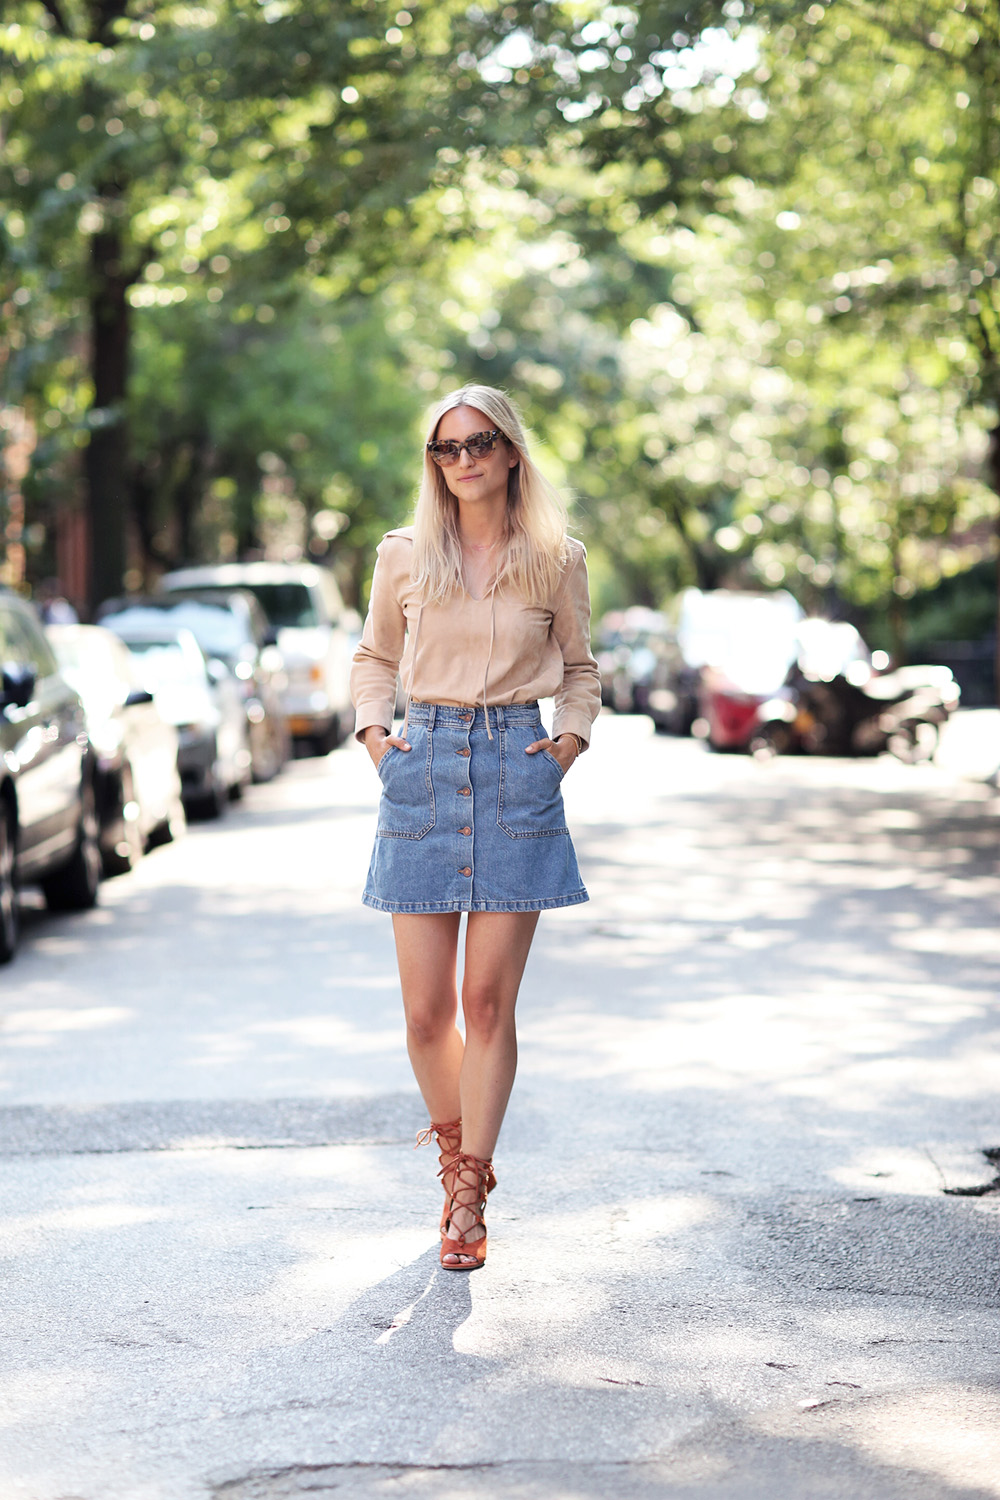 Black skirt outfits ideas